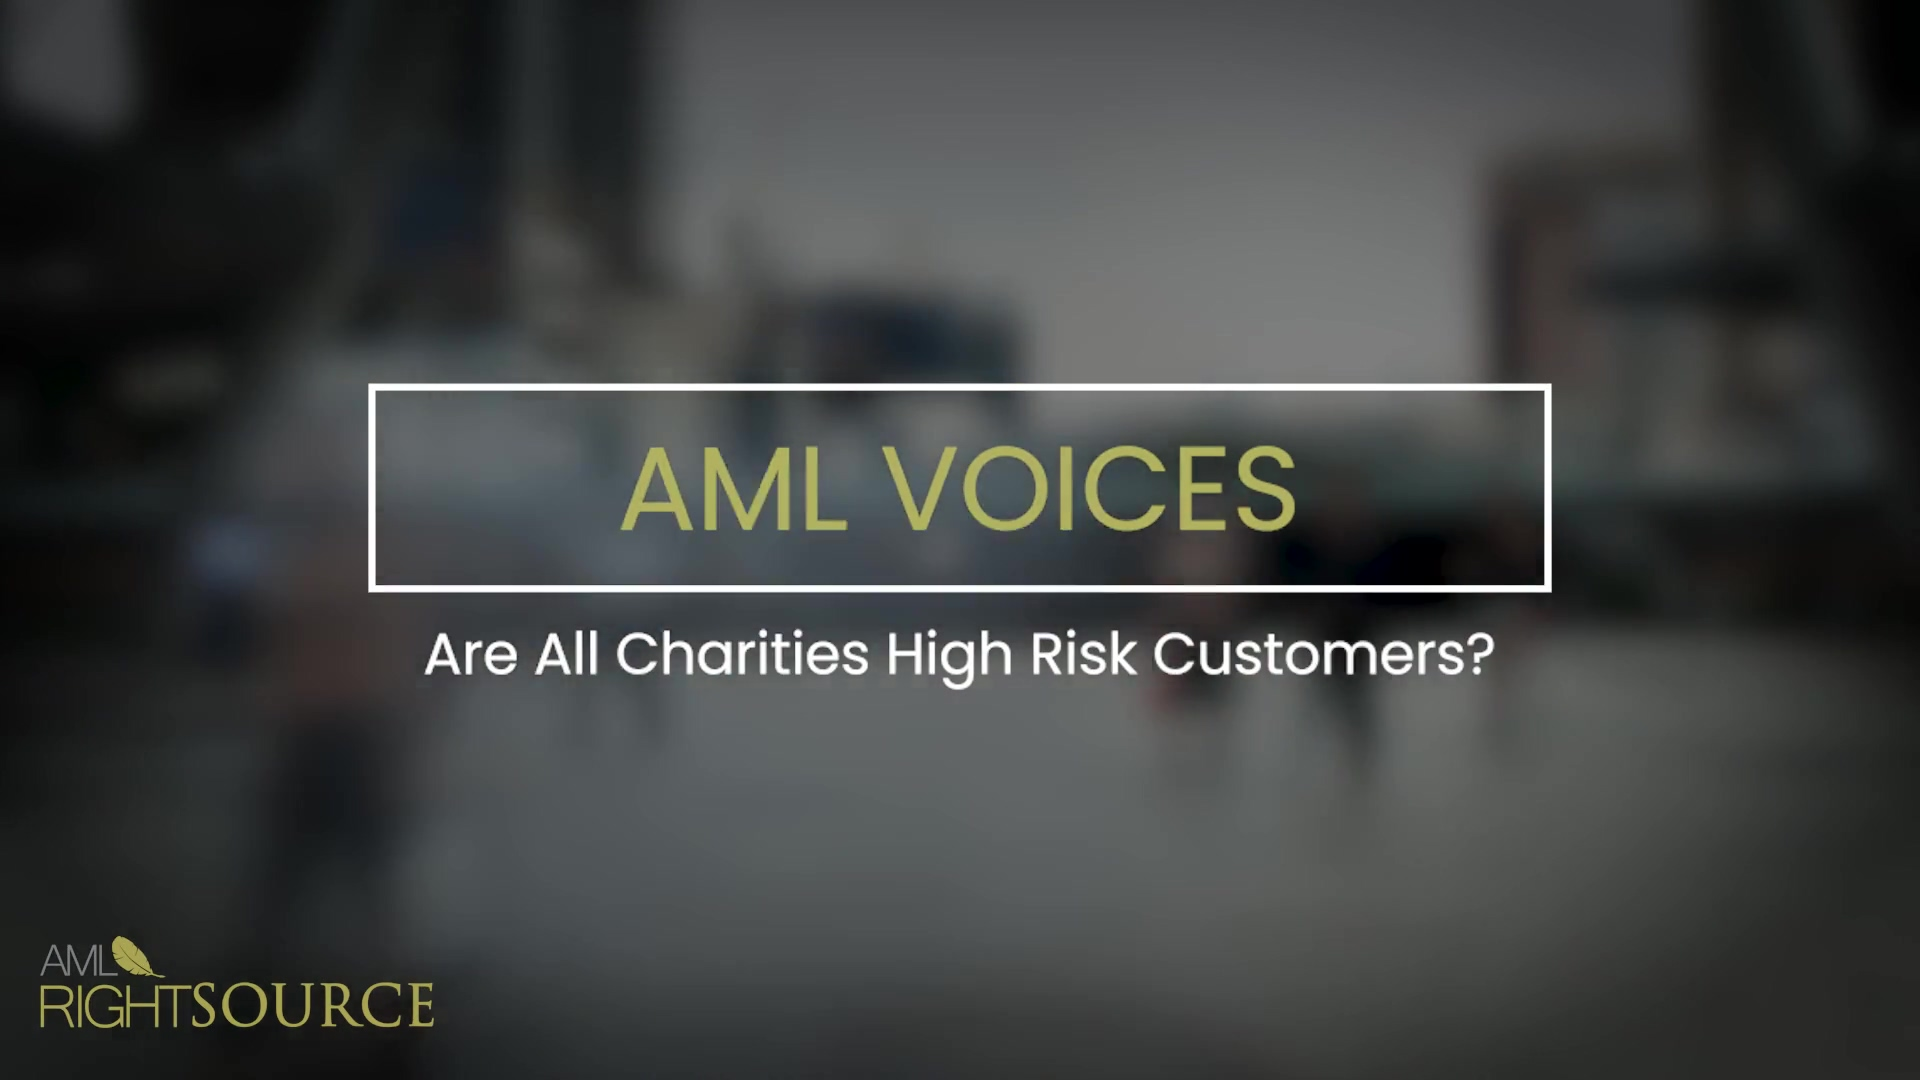 Are All Charities High Risk Customers